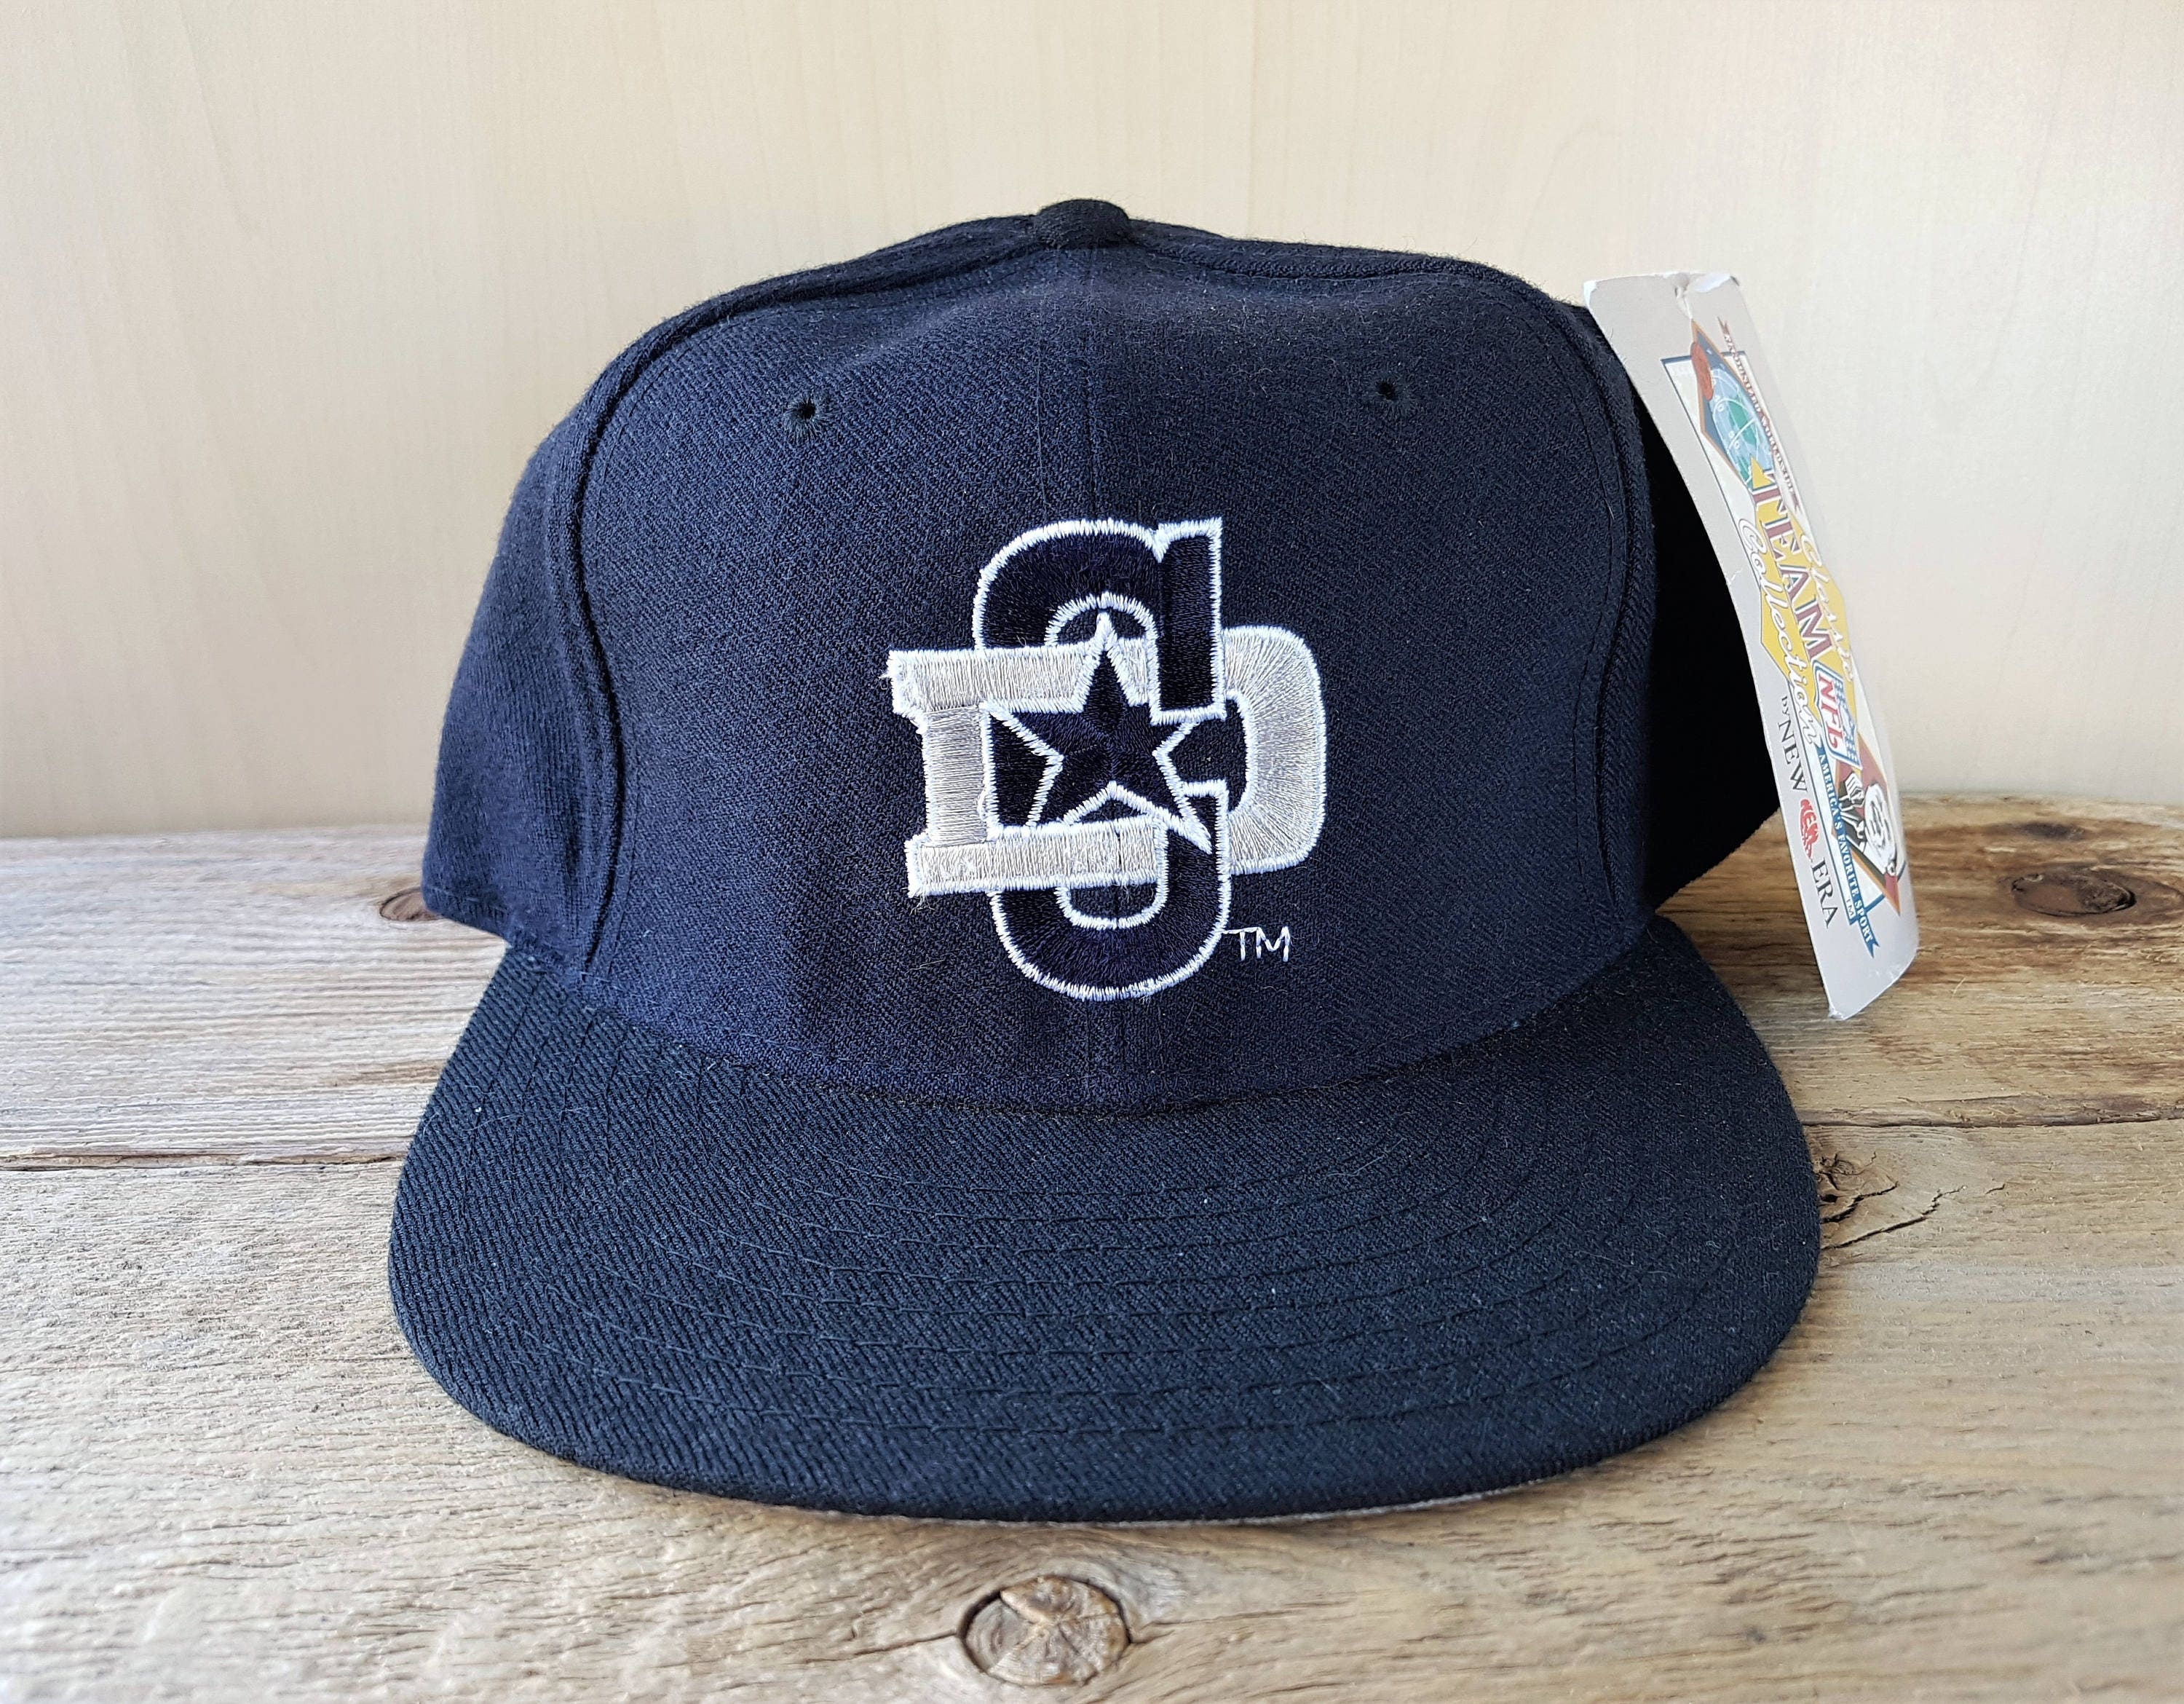 4cfe69a4 Dallas COWBOYS Original Vintage 90s New Era 5950 Pro Model Fitted Wool Hat  7 5/8 Official NFL Classic Team Collection Cap NWT Deadstock